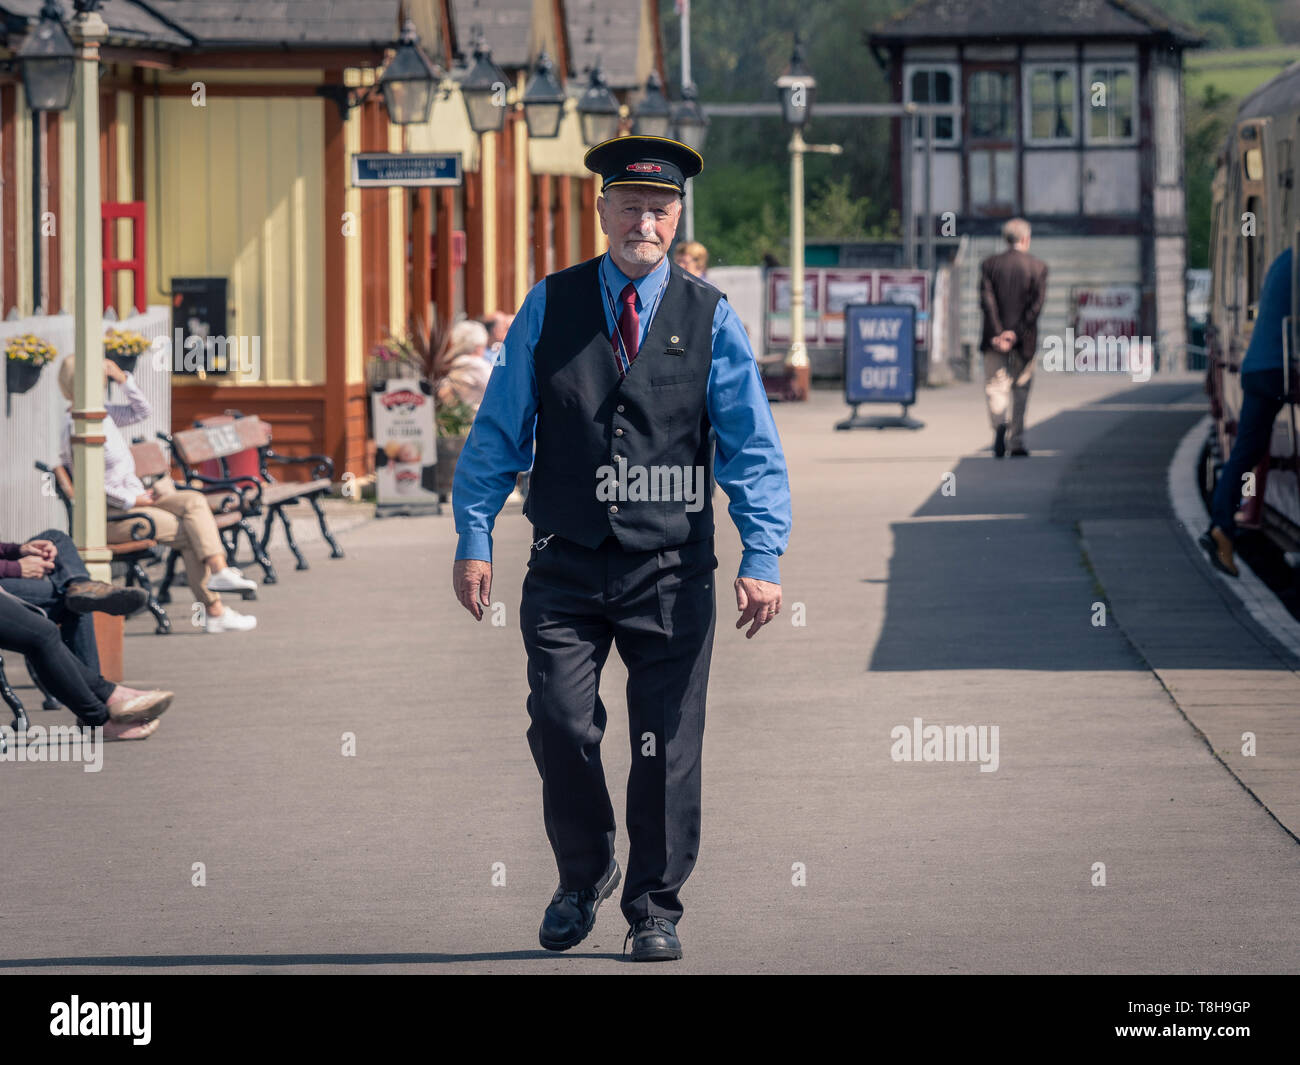 Guard on platform, Bolton and Embsay steam railway. Bolton Station, Yorkshire Dales, UK. - Stock Image